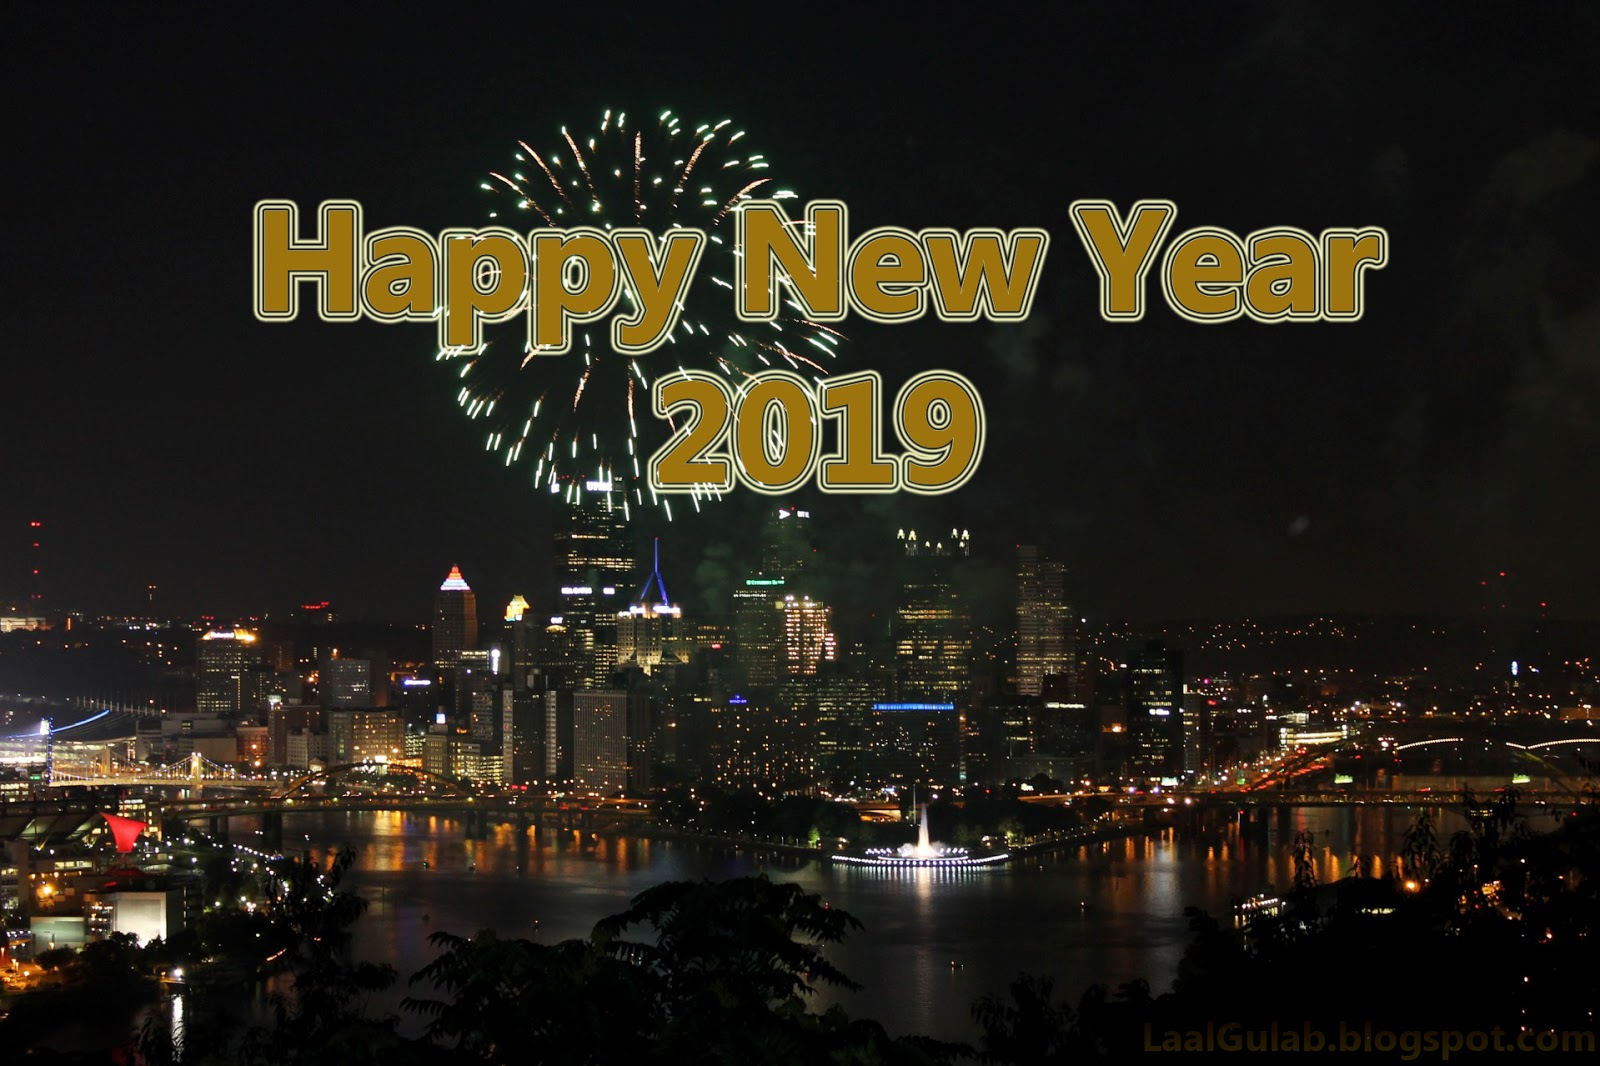 Happy New Year 2019 Wallpapers Hd Images 2019 Happy New Year 2019